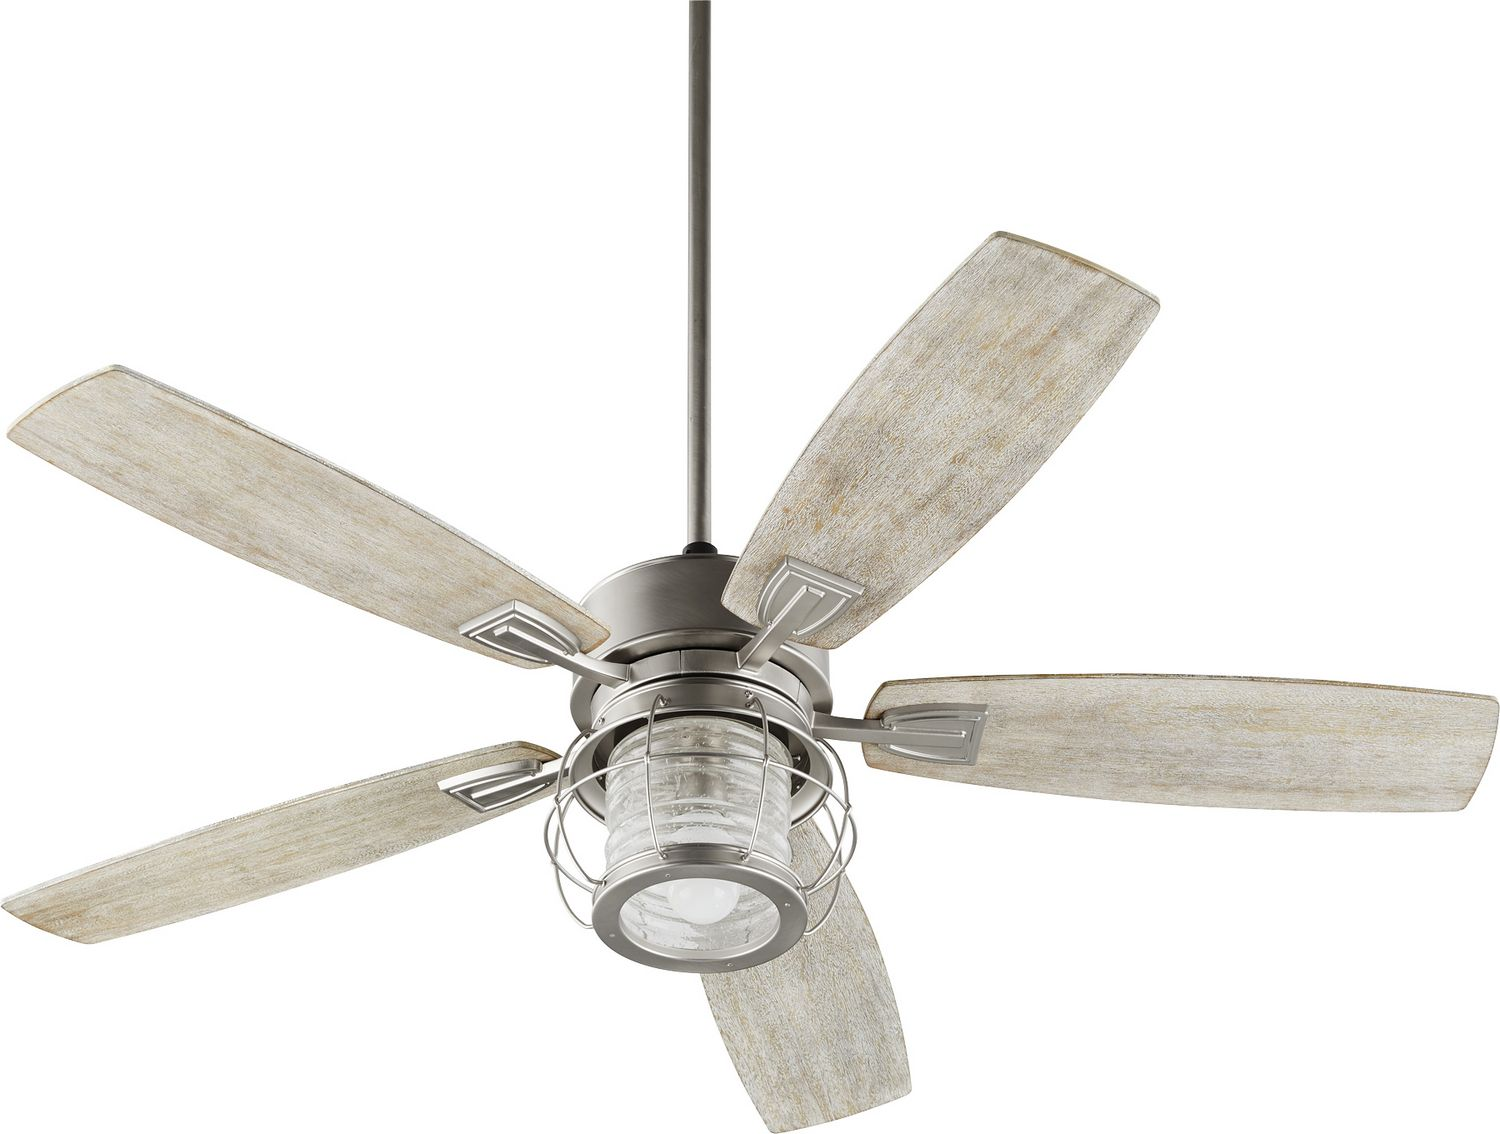 Home Page Exterior Ceiling Fans Ceiling Fan Ceiling Fan With Light